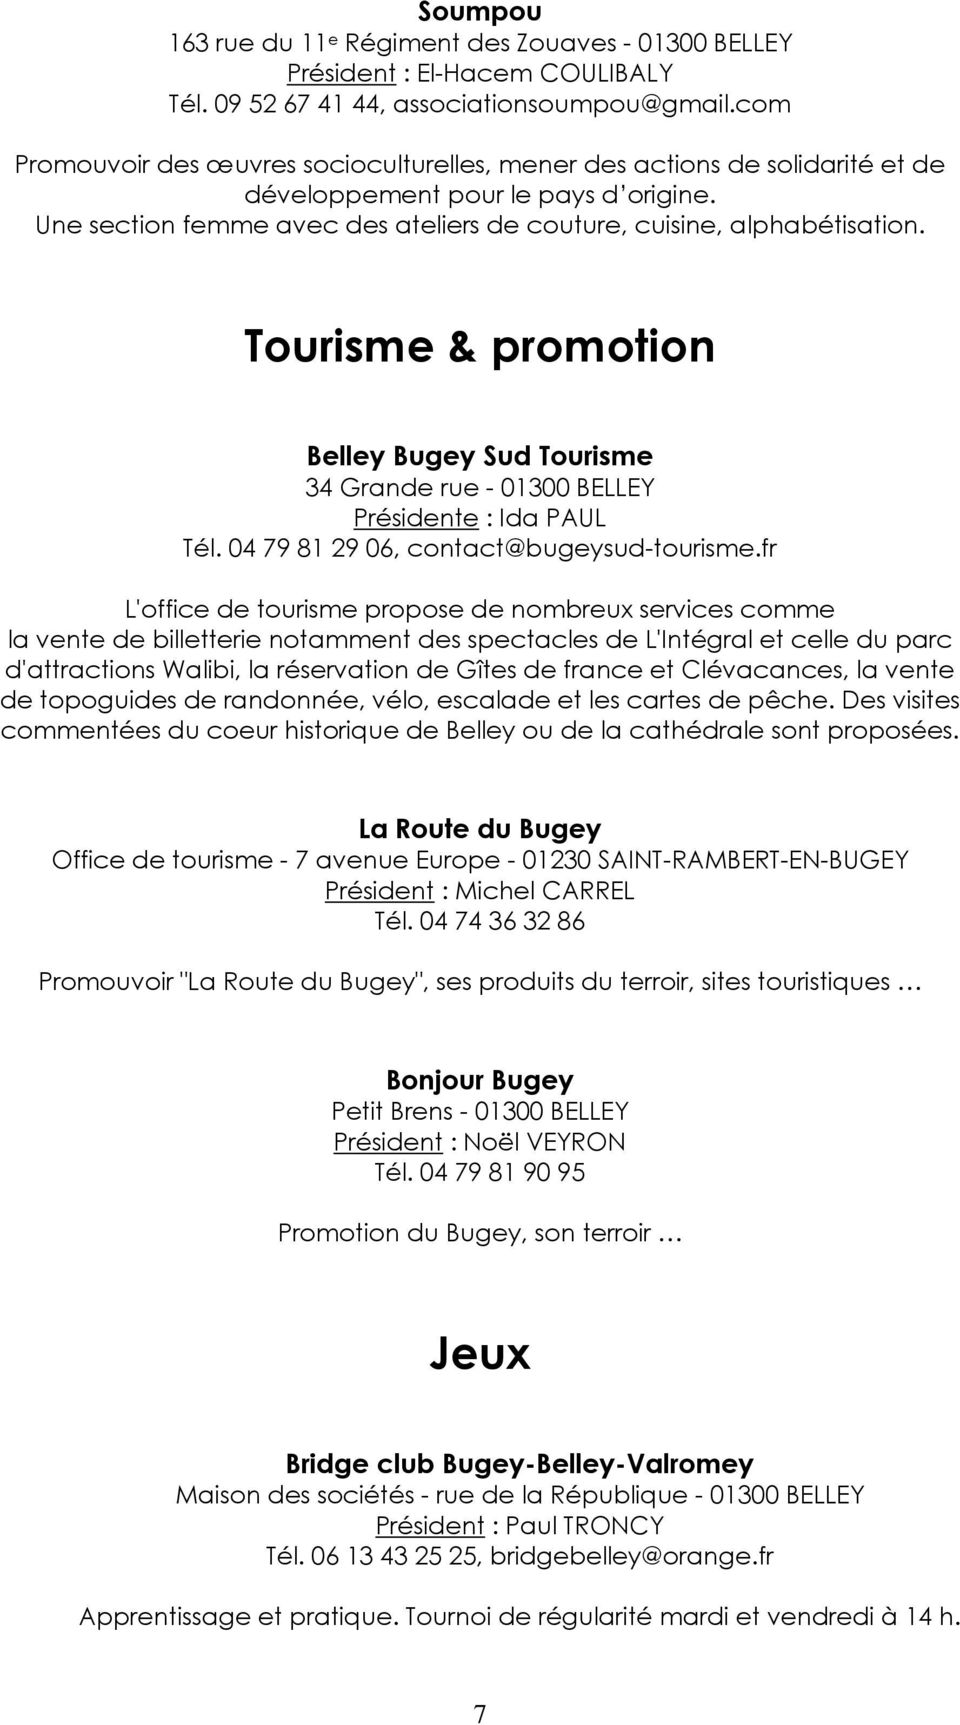 Livret des associations pdf - Office de tourisme belley ...